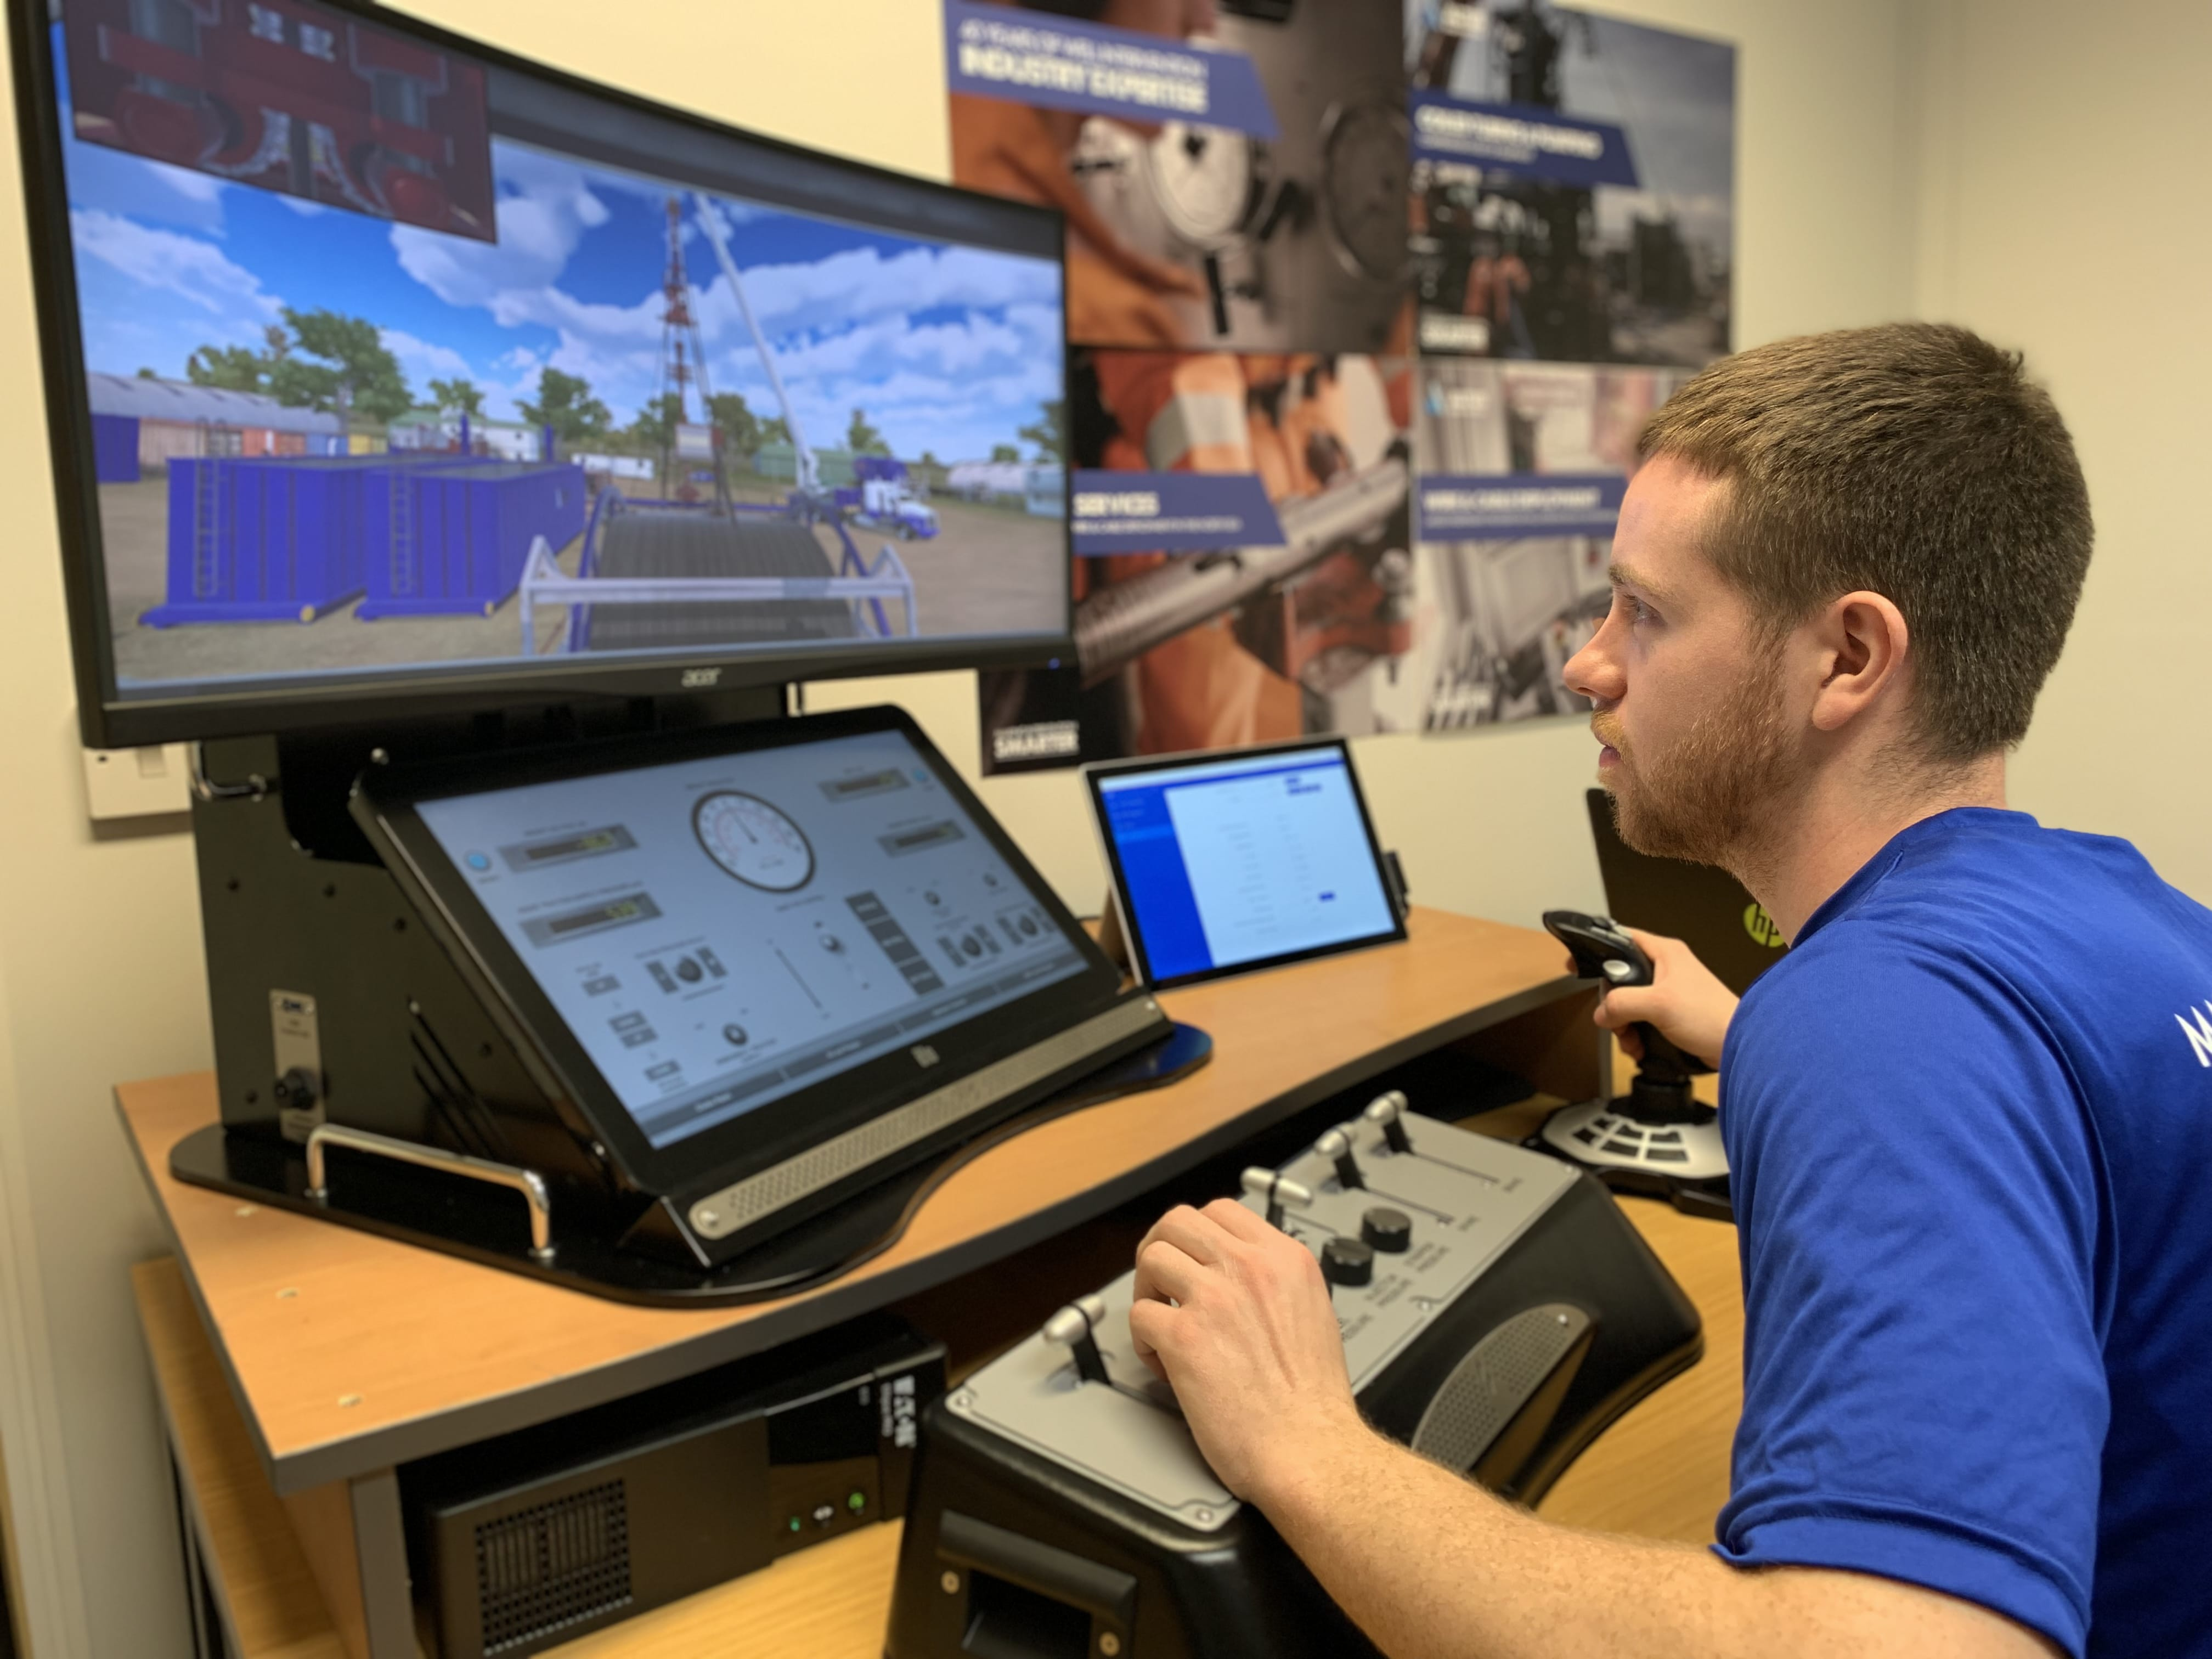 'Altus Intervention's new MultiSIM being used by an employee to practise a coiled tubing nitrogen gas lift'